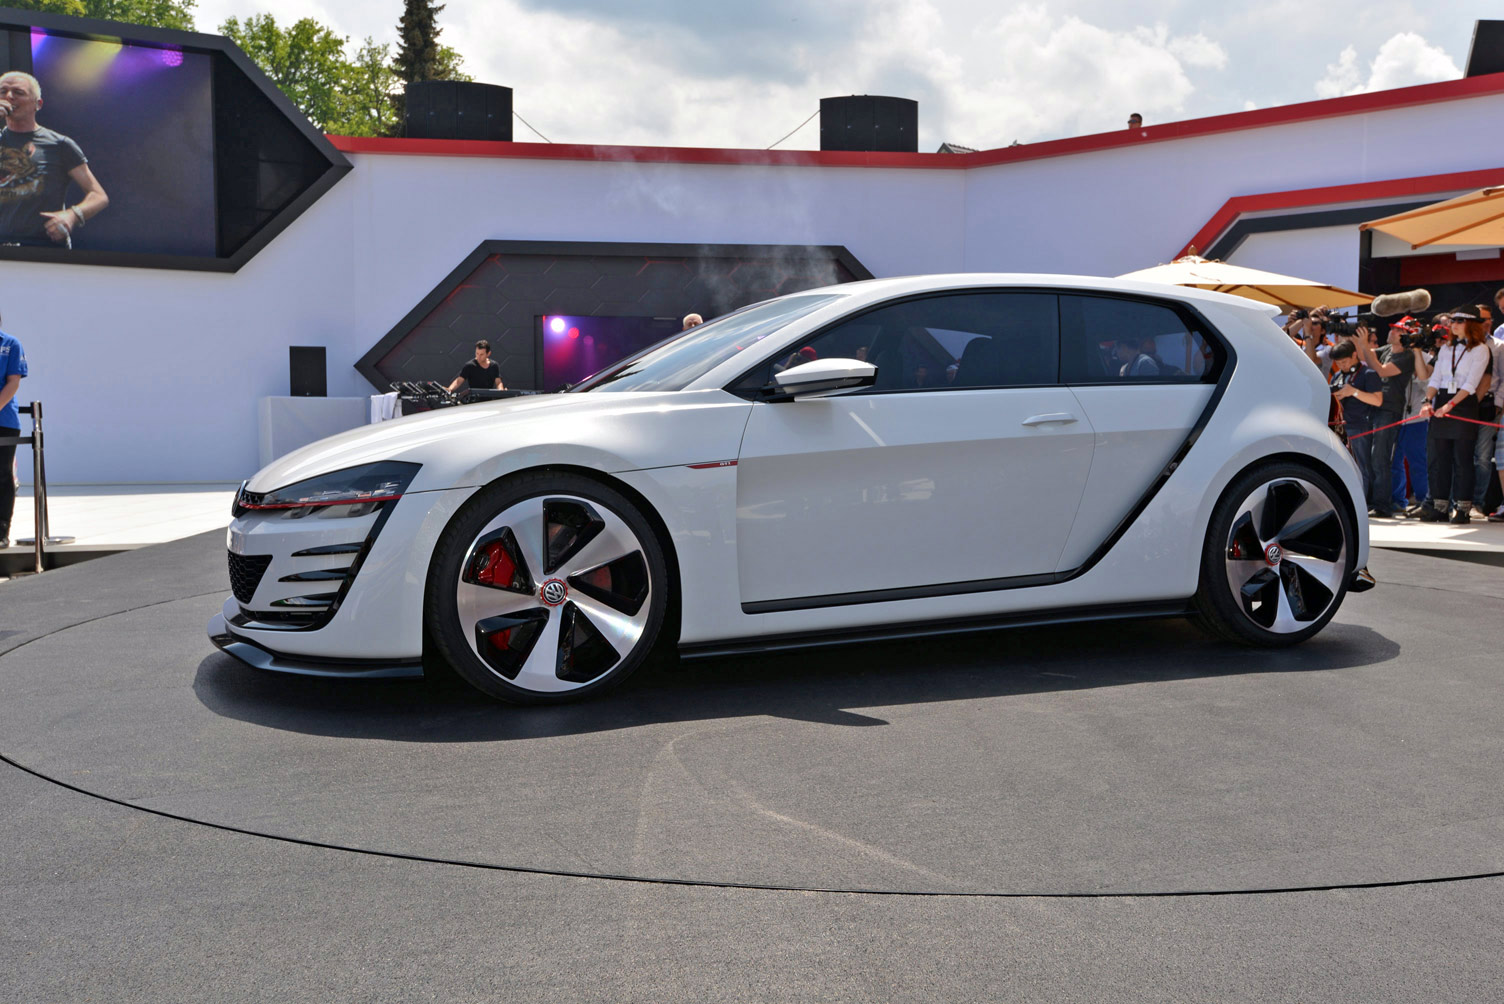 volkswagen-design-vision-gti-worthersee-019